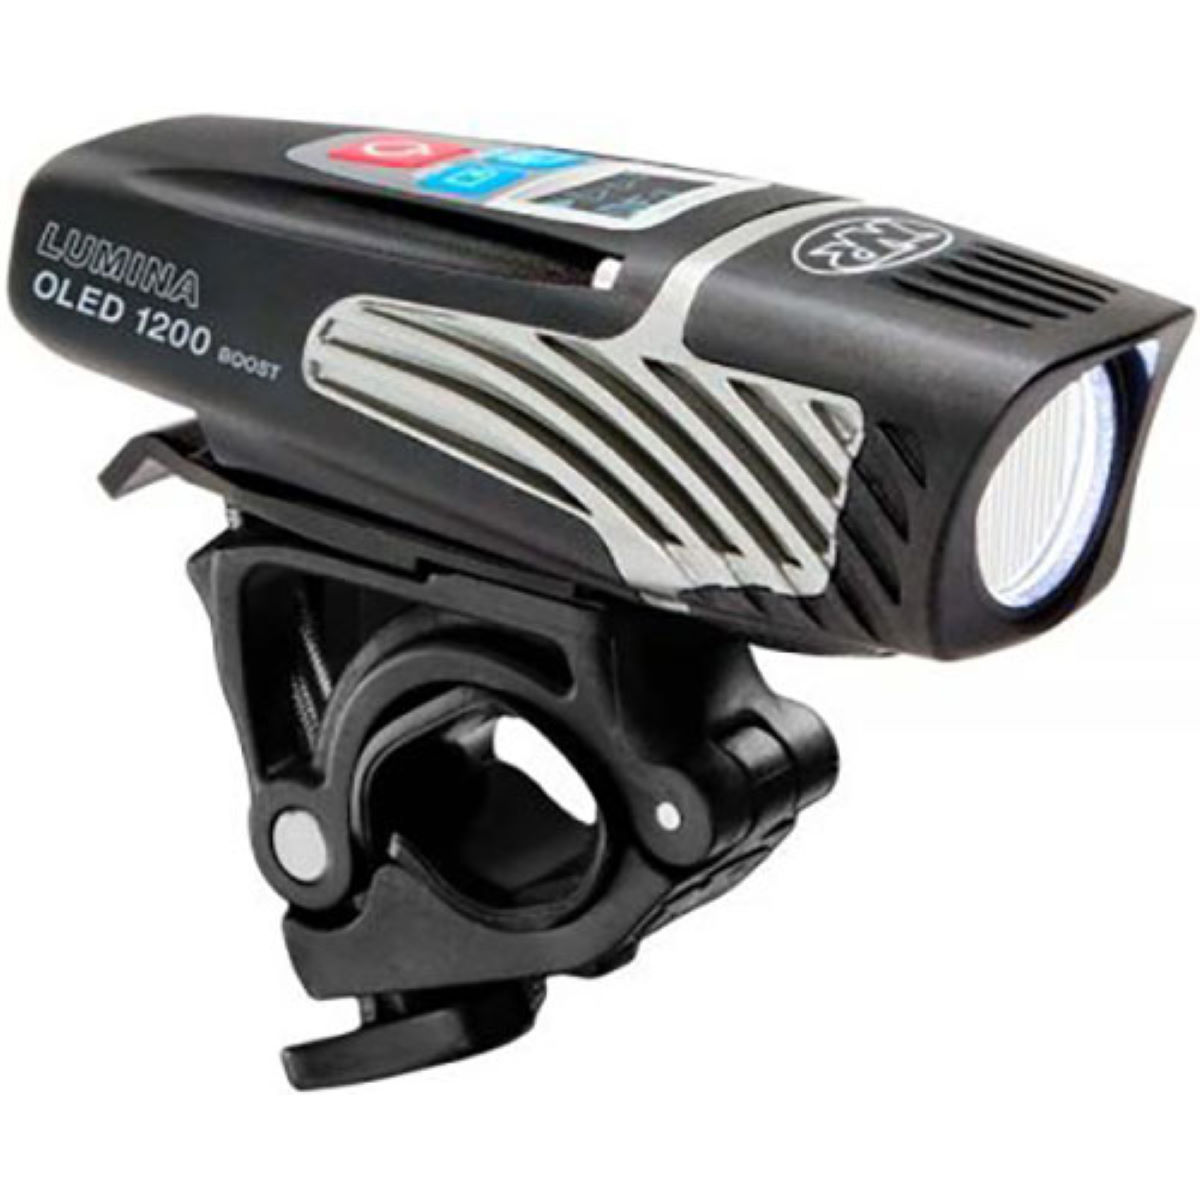 NiteRider Lumina 1200 Oled Boost Front Light - Luces delanteras